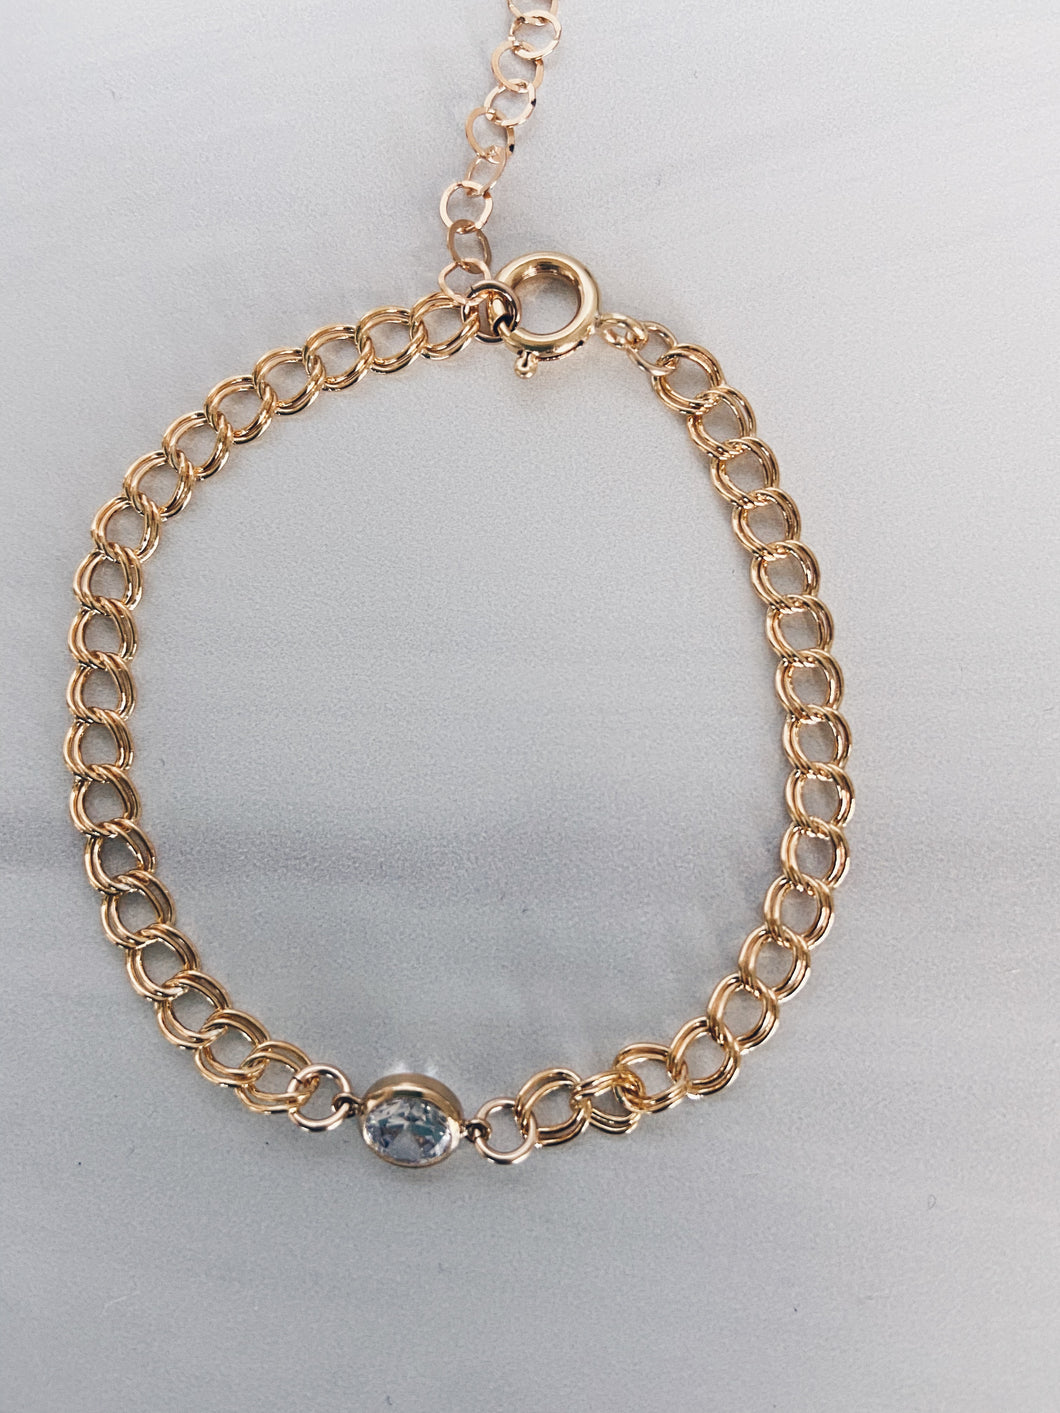 14k Gold Filled Curb Chain & CZ Anklet